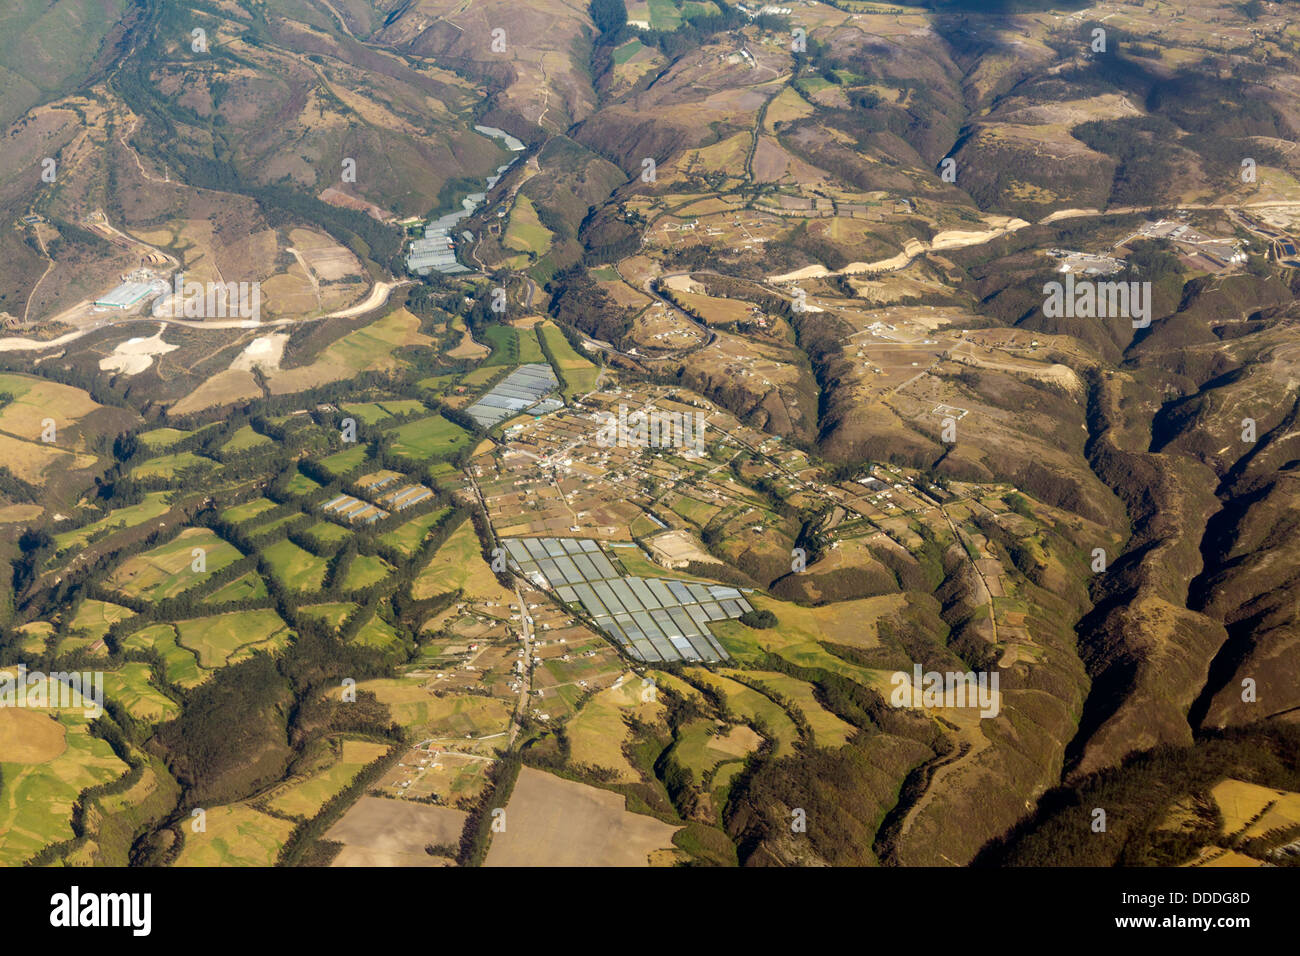 Aerial view of Cayambe in the Ecuadorian Andes showing greenhouses used for rose cultivation - Stock Image